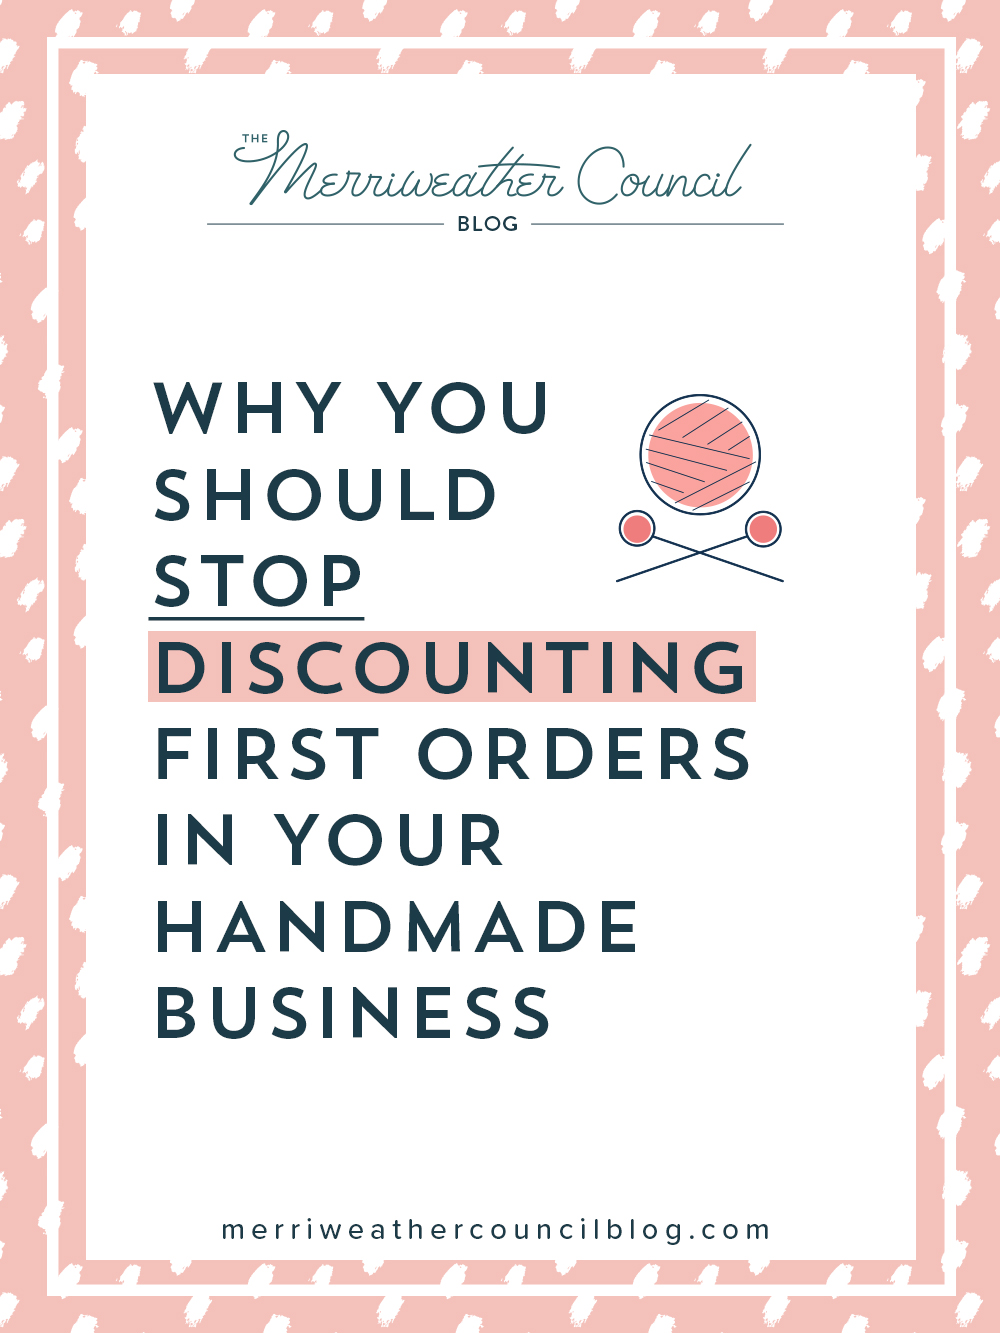 why you should stop discounting first orders in your handmade business | the merriweather council blog